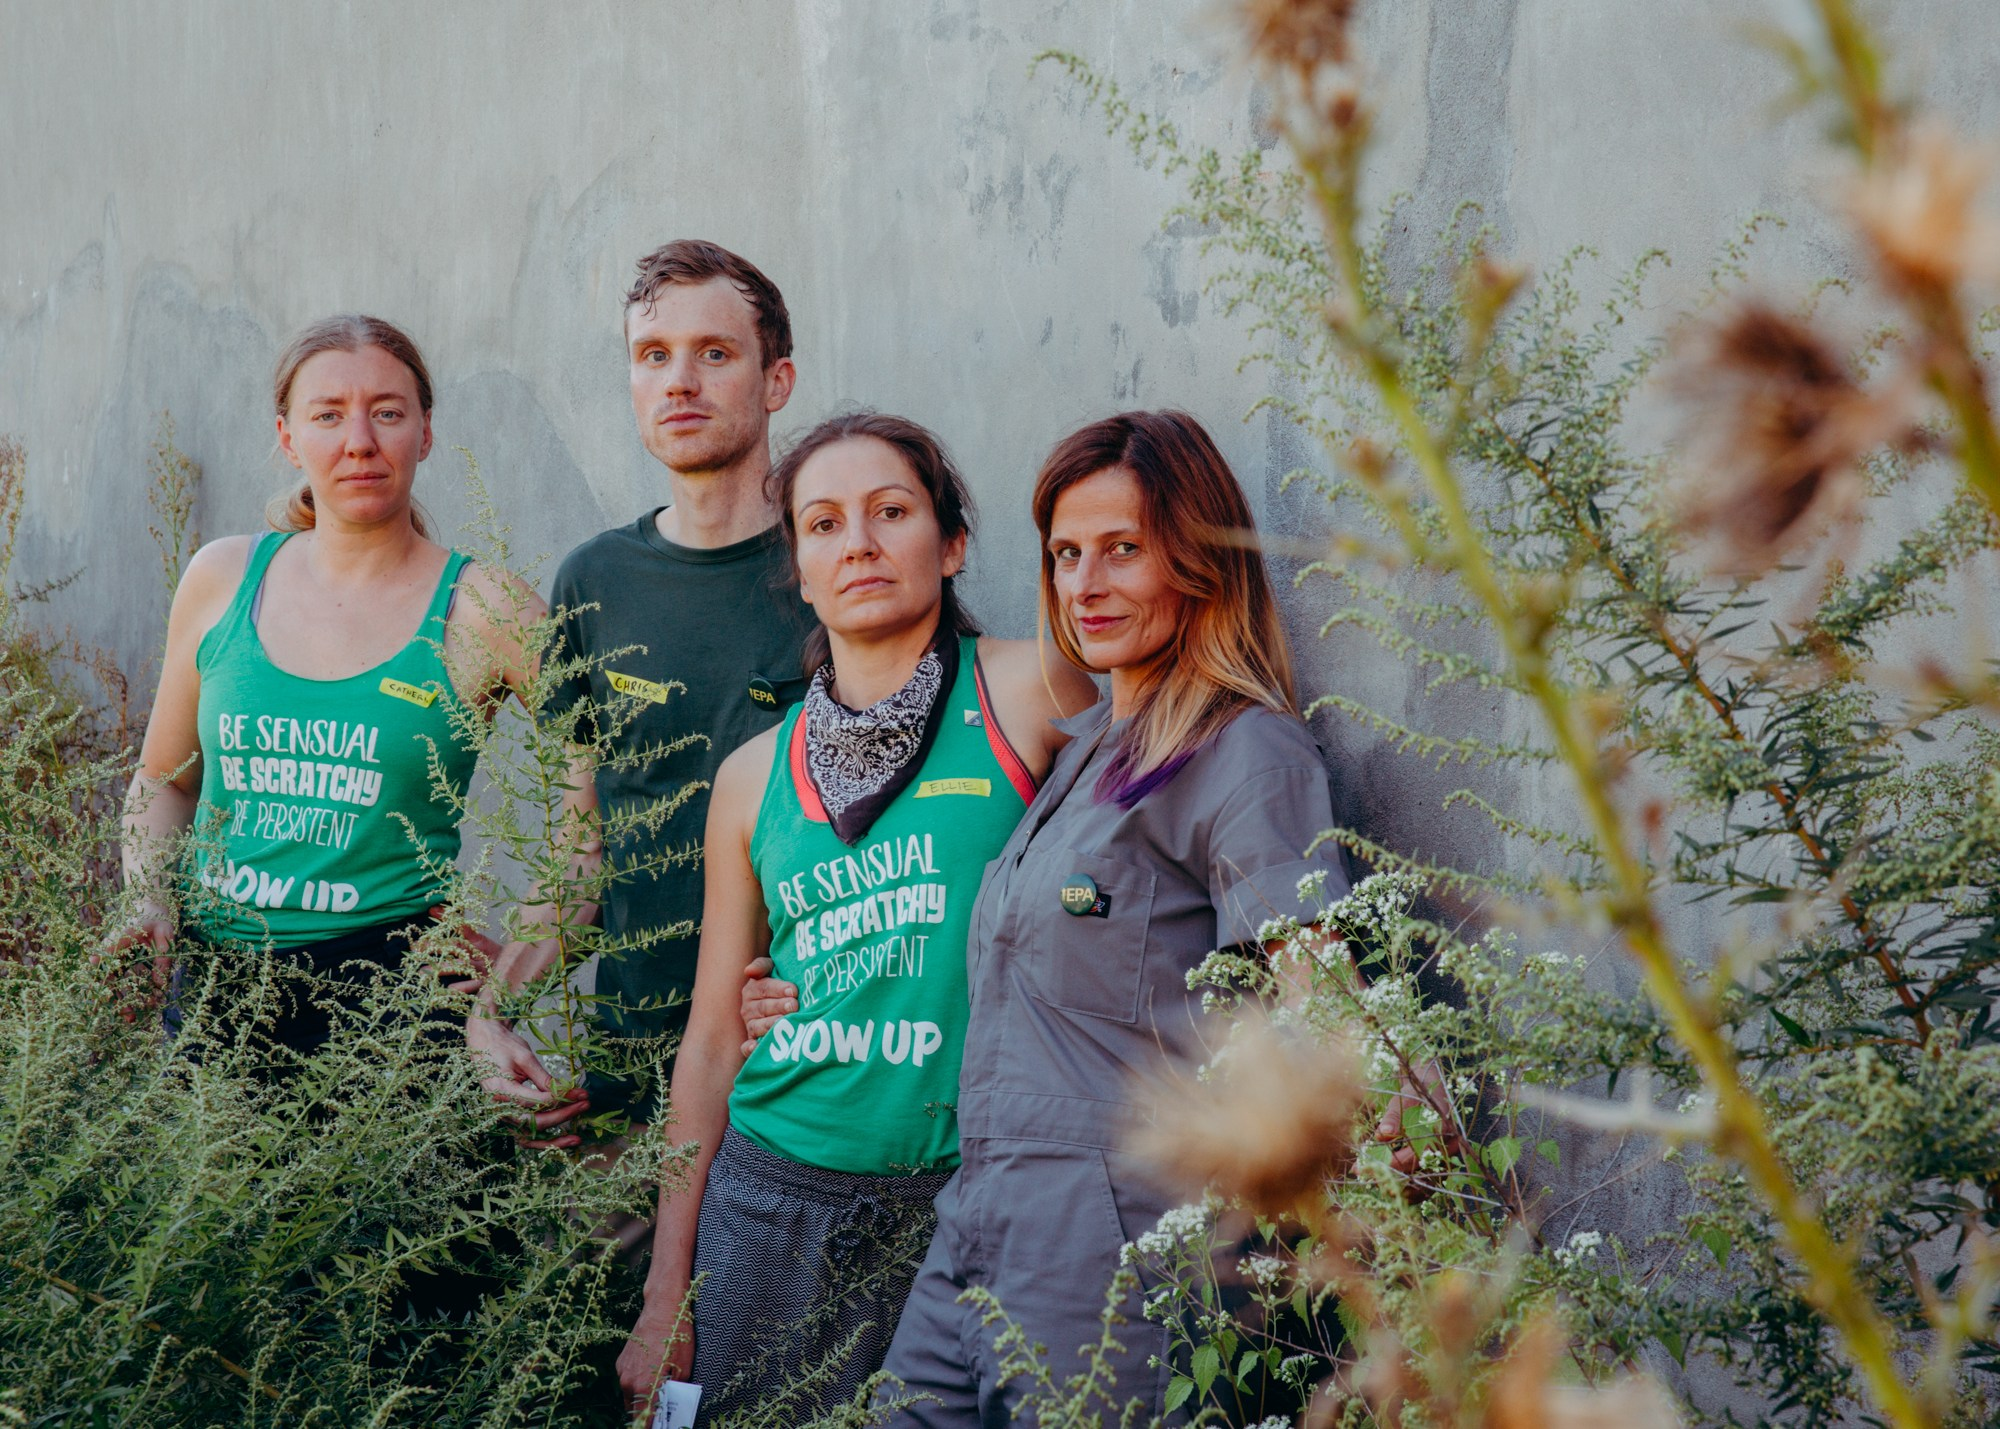 Photo of the EPA Agents: Catherine Grau, andrea haenggi, Ellie Irons, and Christopher Kennedy.